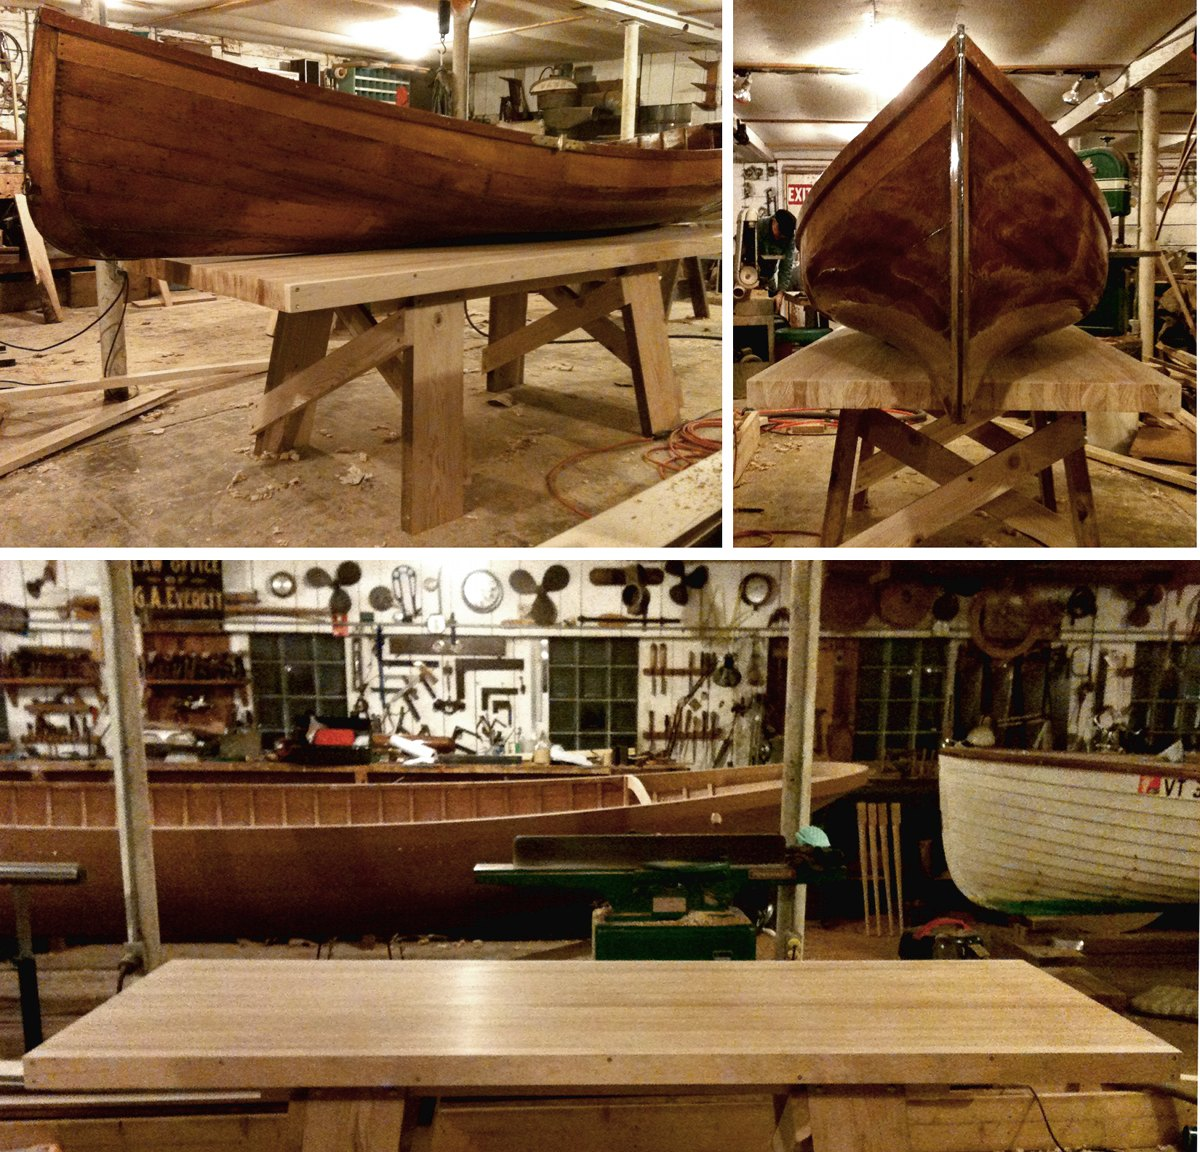 Boatshop dining table, inspired by the simple architecture of sawhorses.